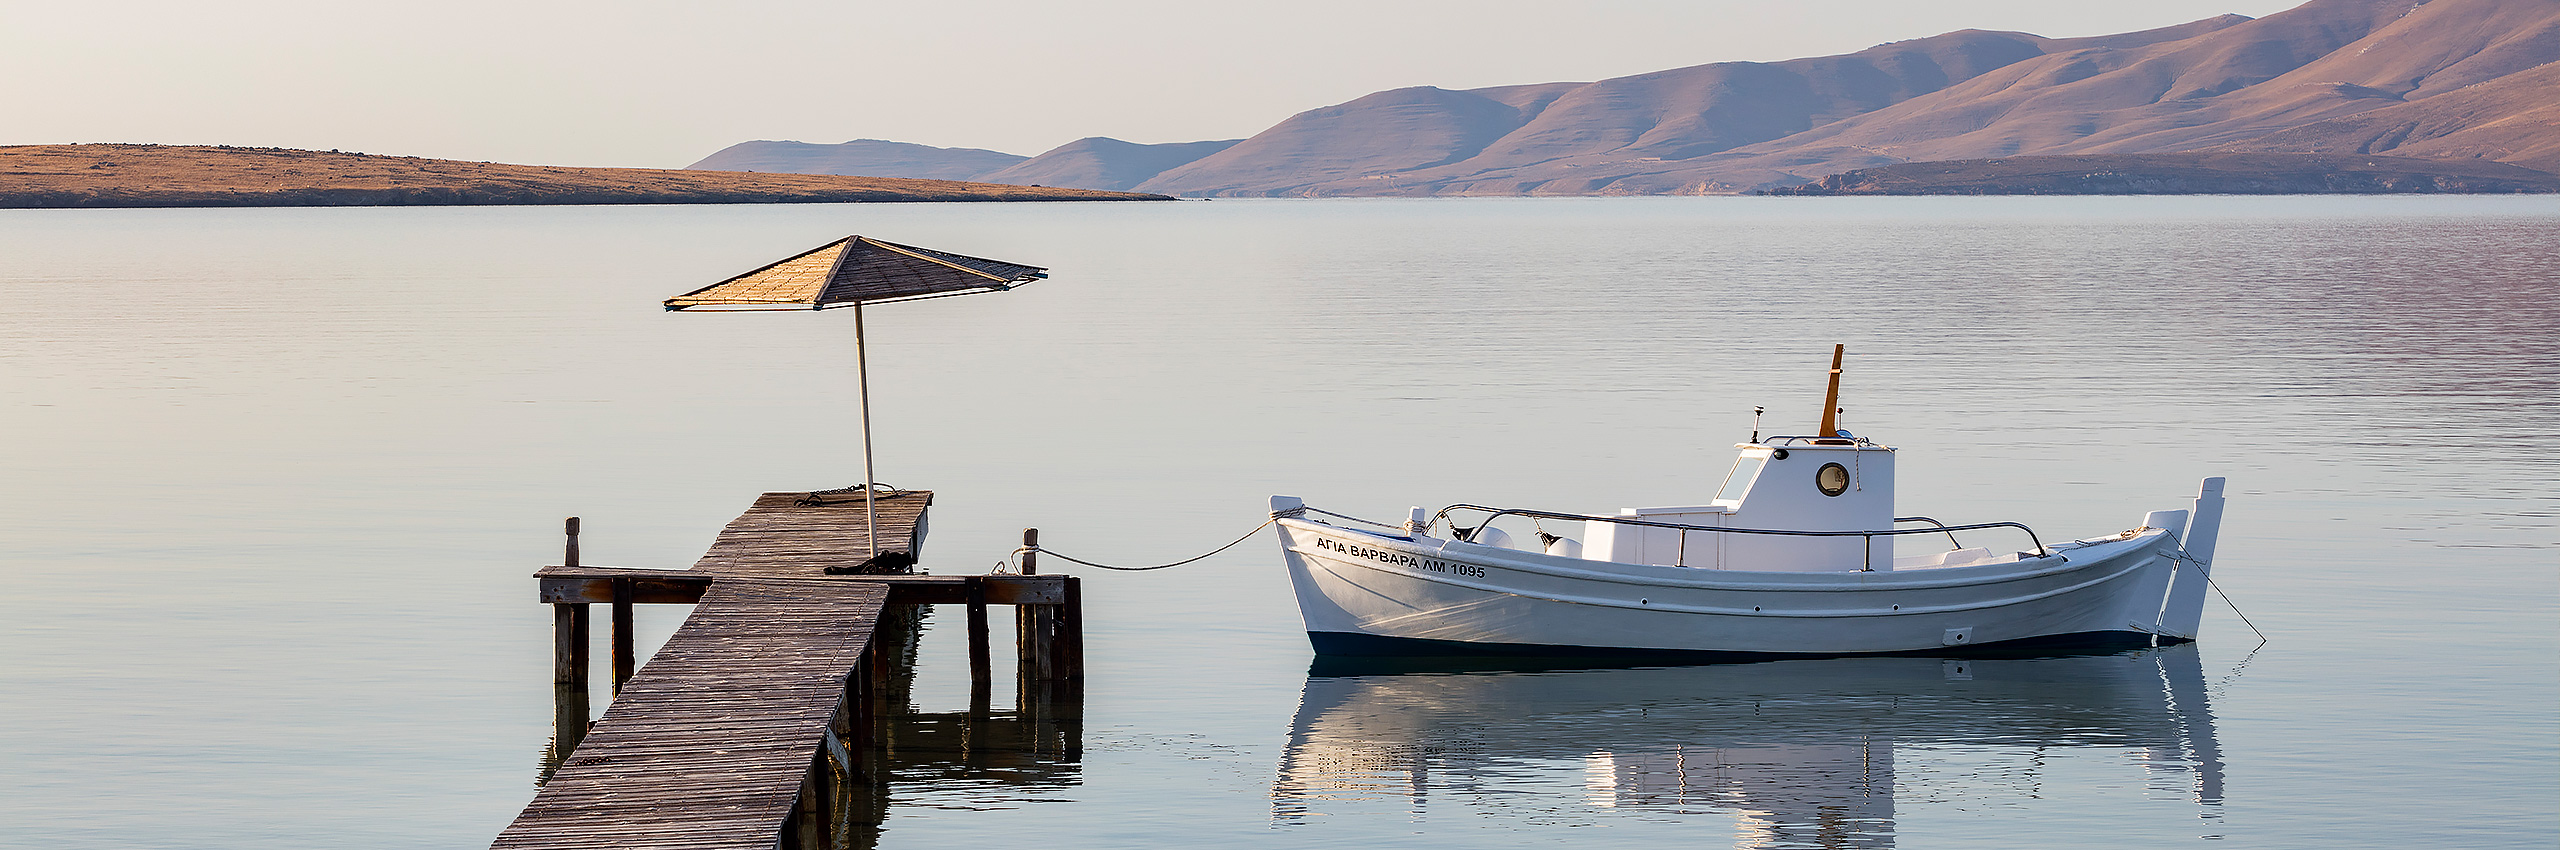 SIM-523280 | Greece/Aegean islands, Lemnos | © Massimo Ripani/SIME